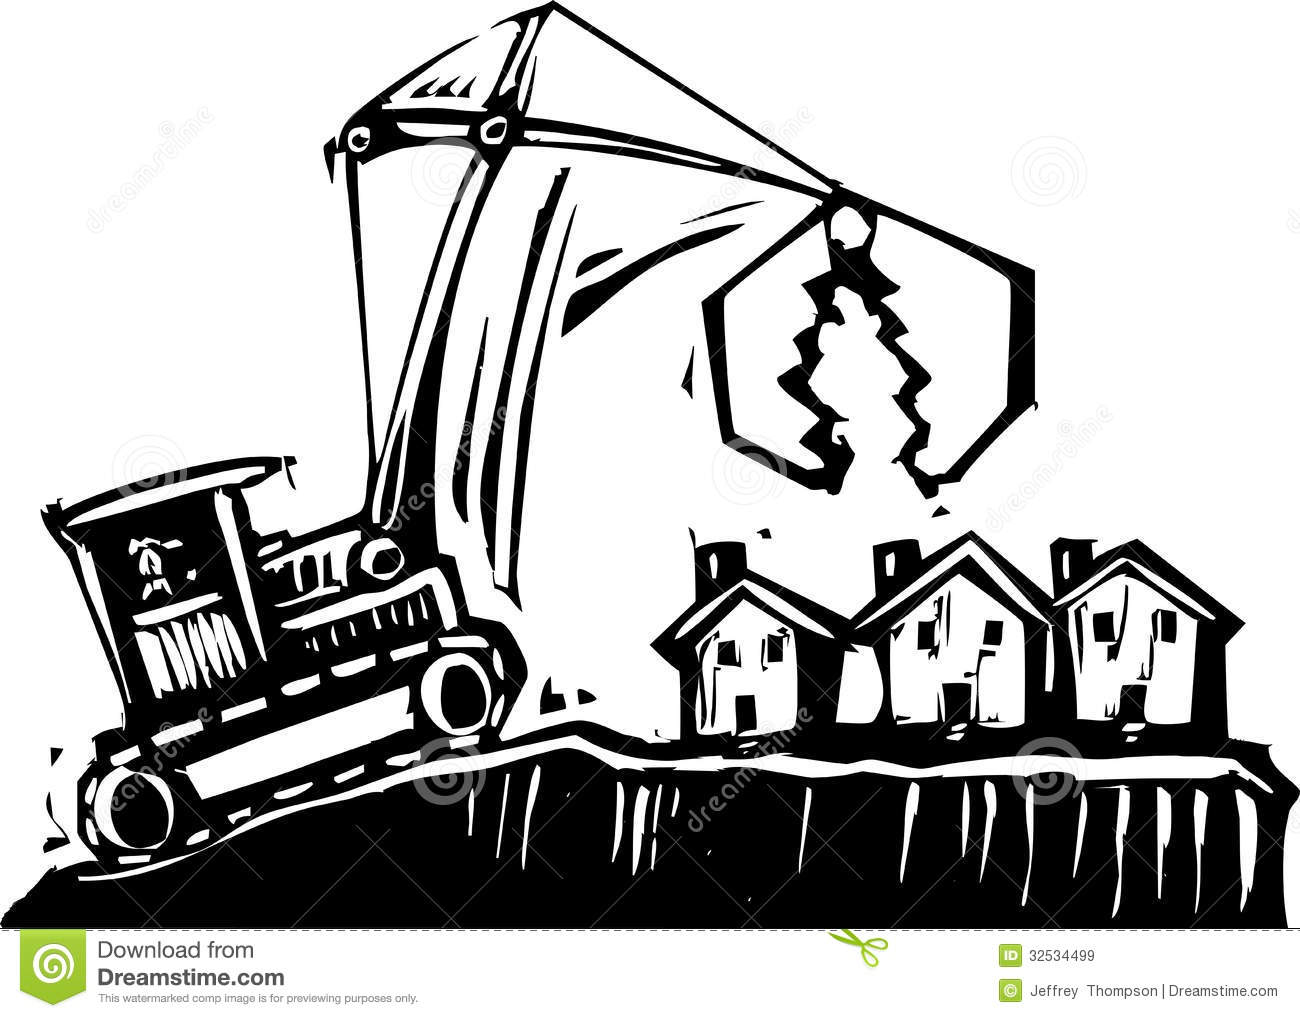 Royalty Free Stock Images Shrinking City Woodcut Style Image Crane Getting Ready To Demolish Small Houses Image32534499 on Small House Plan 3d Home Design